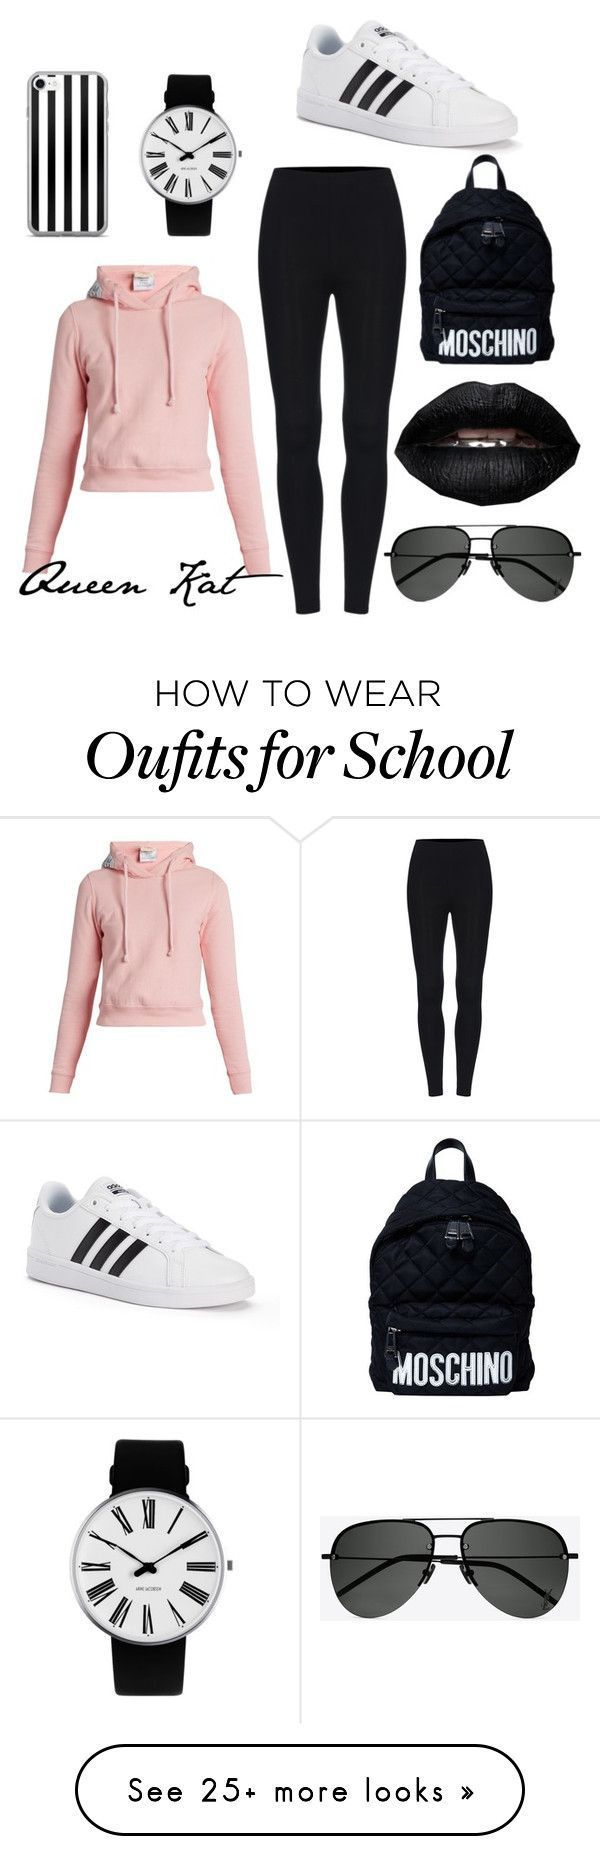 "Maillot de bain : ""School outfit"" by queenkatttt on Polyvore featuring Vetements Yves S"